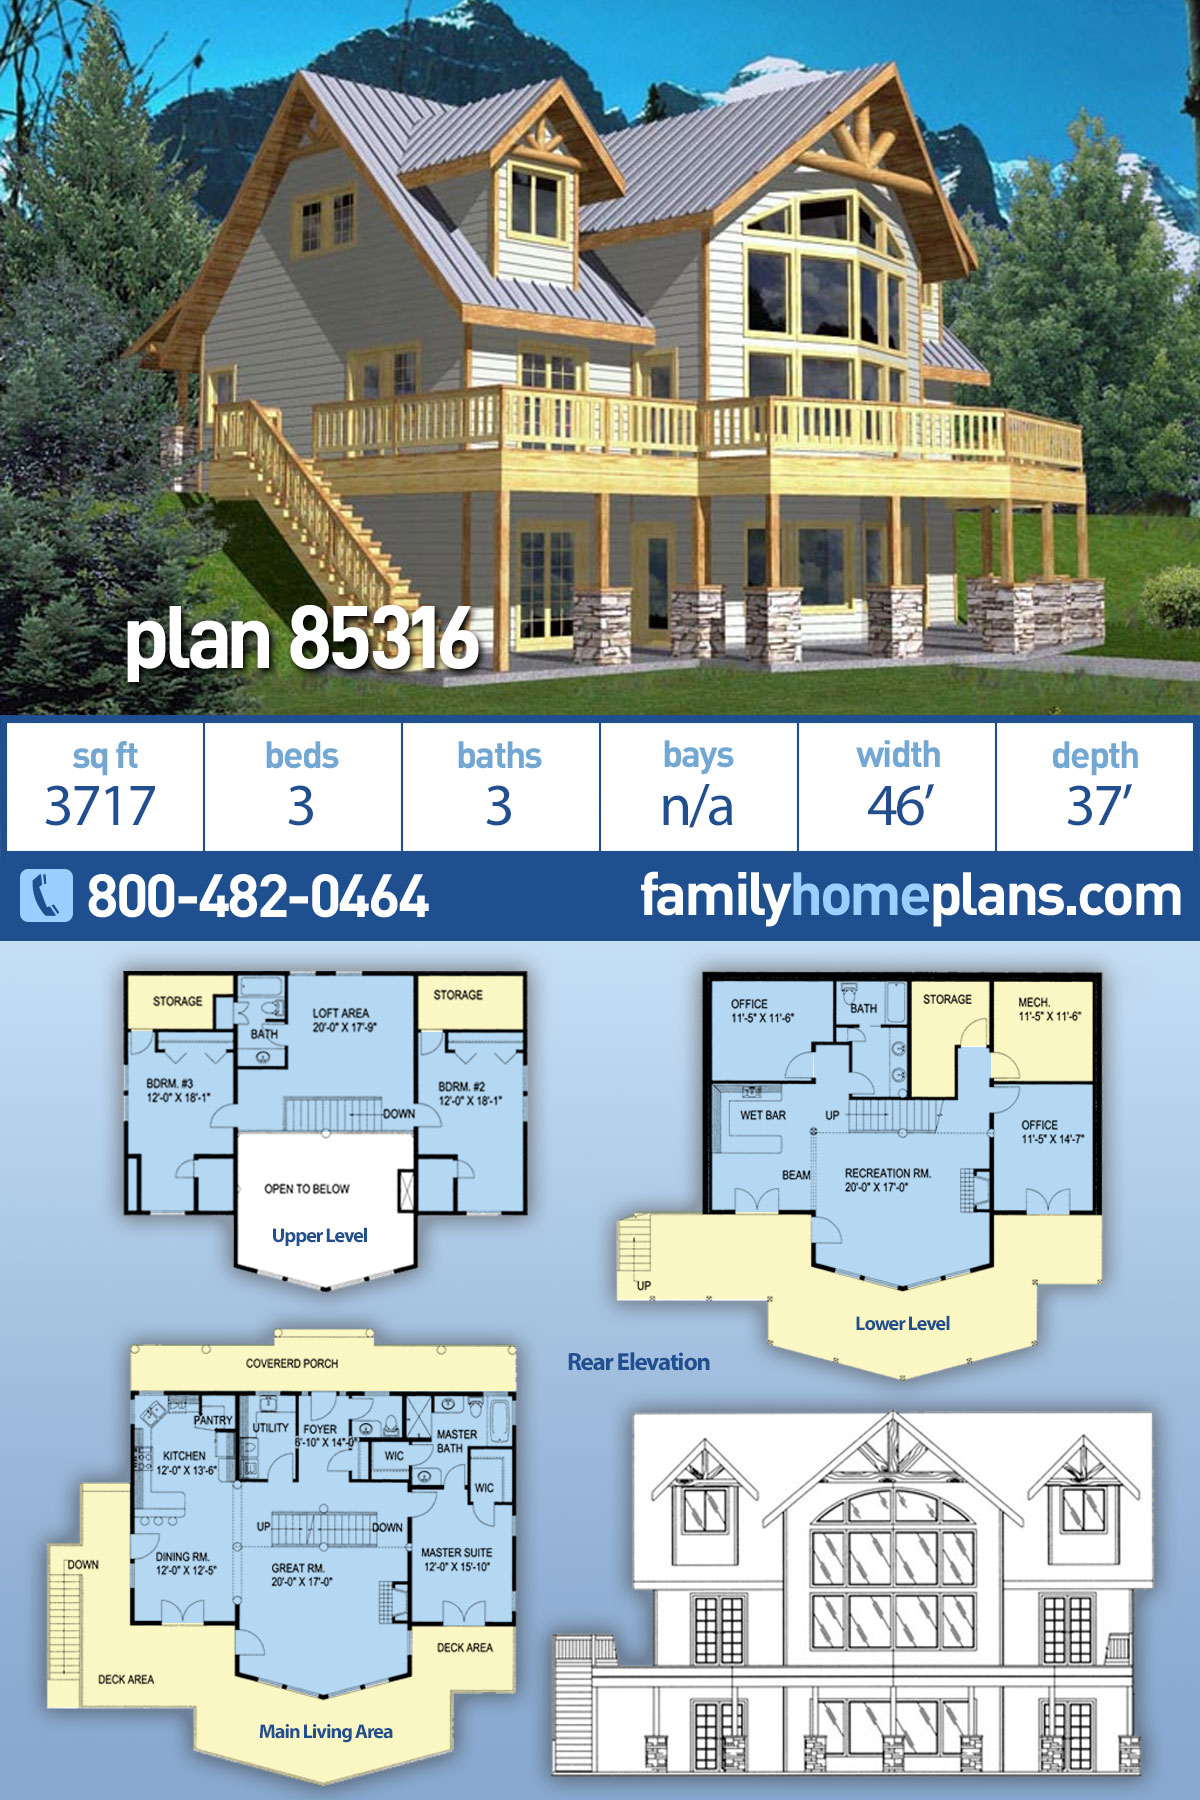 Coastal House Plan 85316 with 3 Beds, 3 Baths